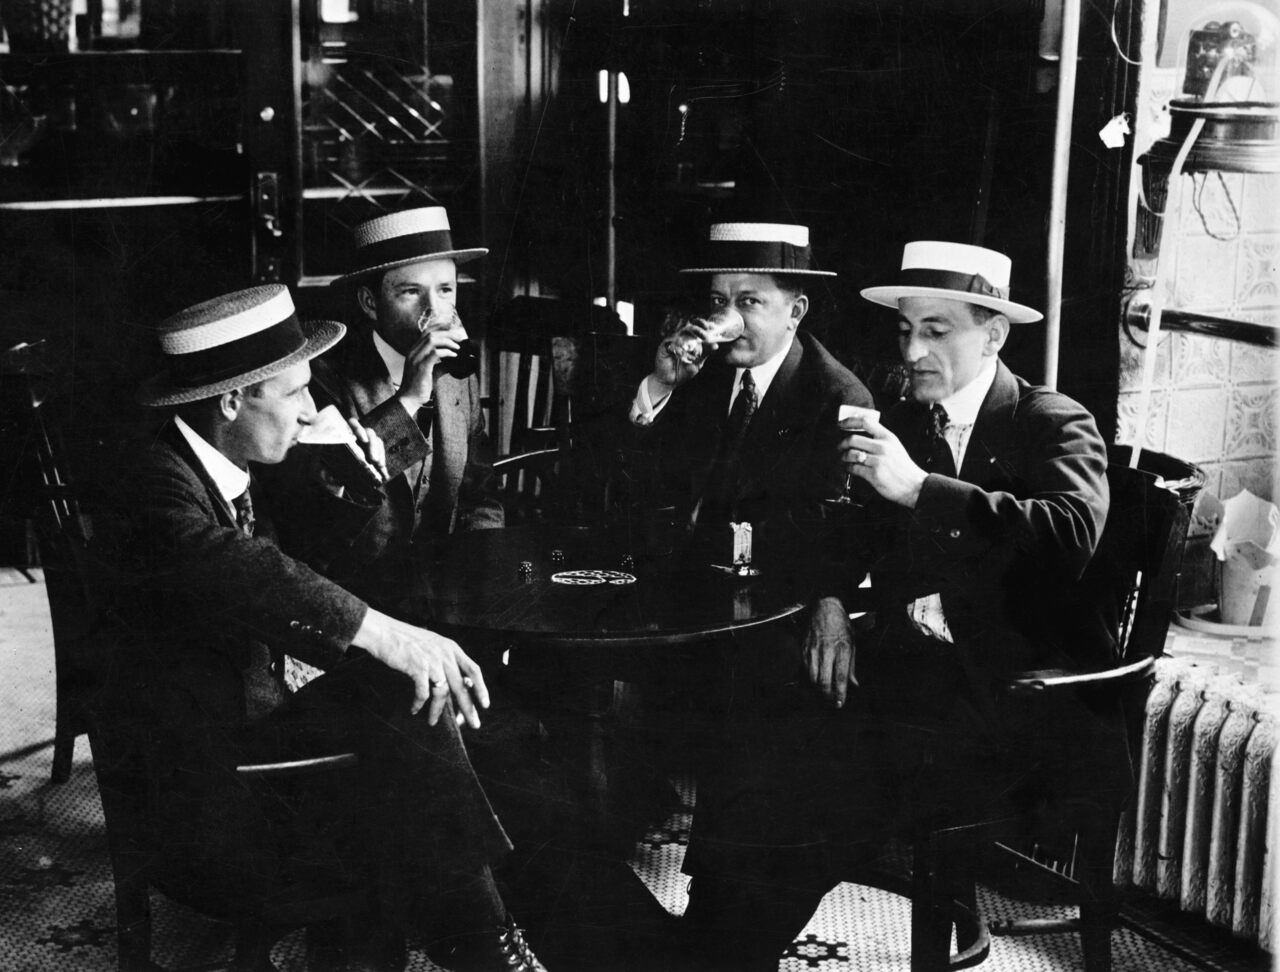 Four men in boater hats enjoy a last drink together before Prohibition begins in 1919.